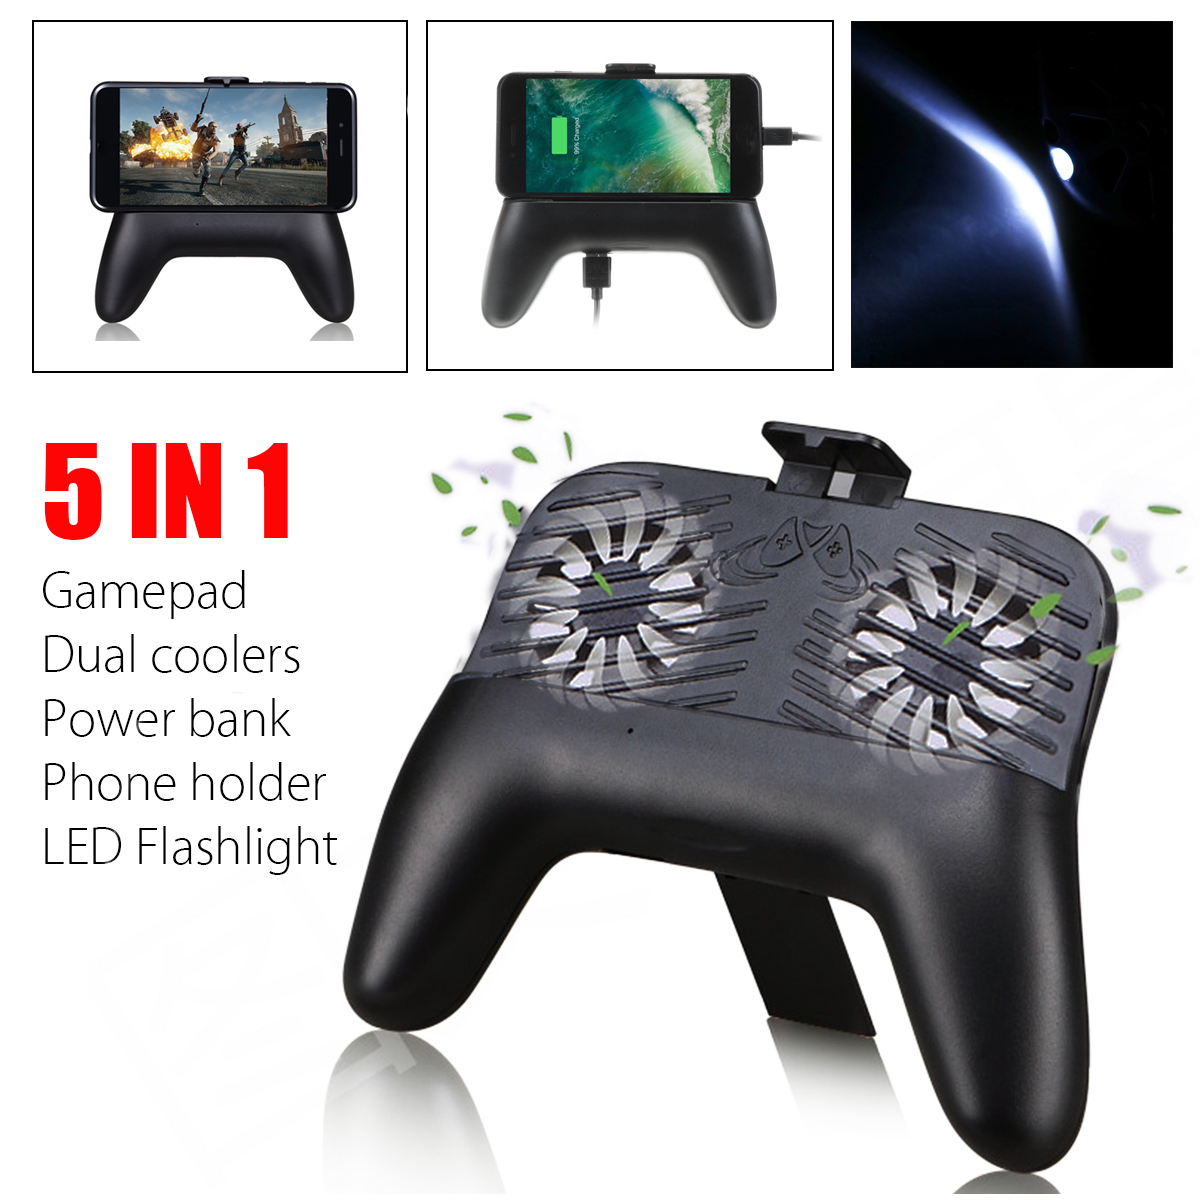 Bakeey Mobile Phone Game Joystick with Cooler Fan Power Bank Gamepad Handler for Smartphones